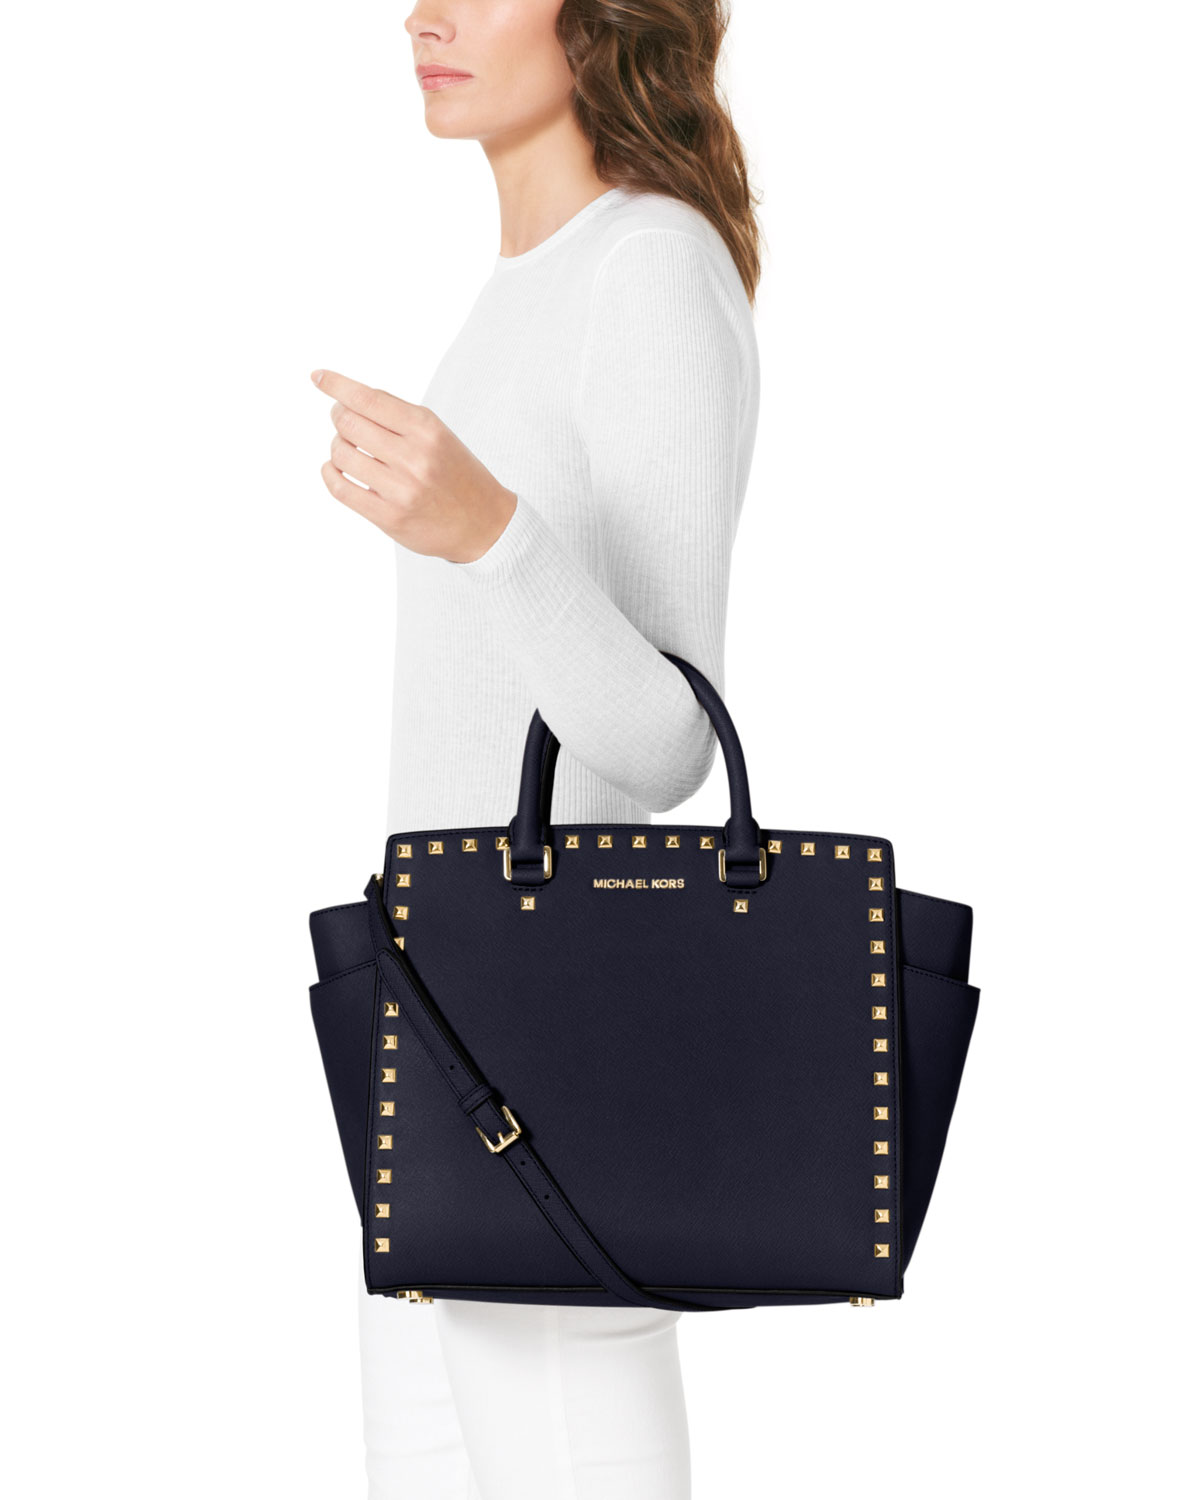 michael michael kors large selma studded saffiano tote in blue lyst. Black Bedroom Furniture Sets. Home Design Ideas